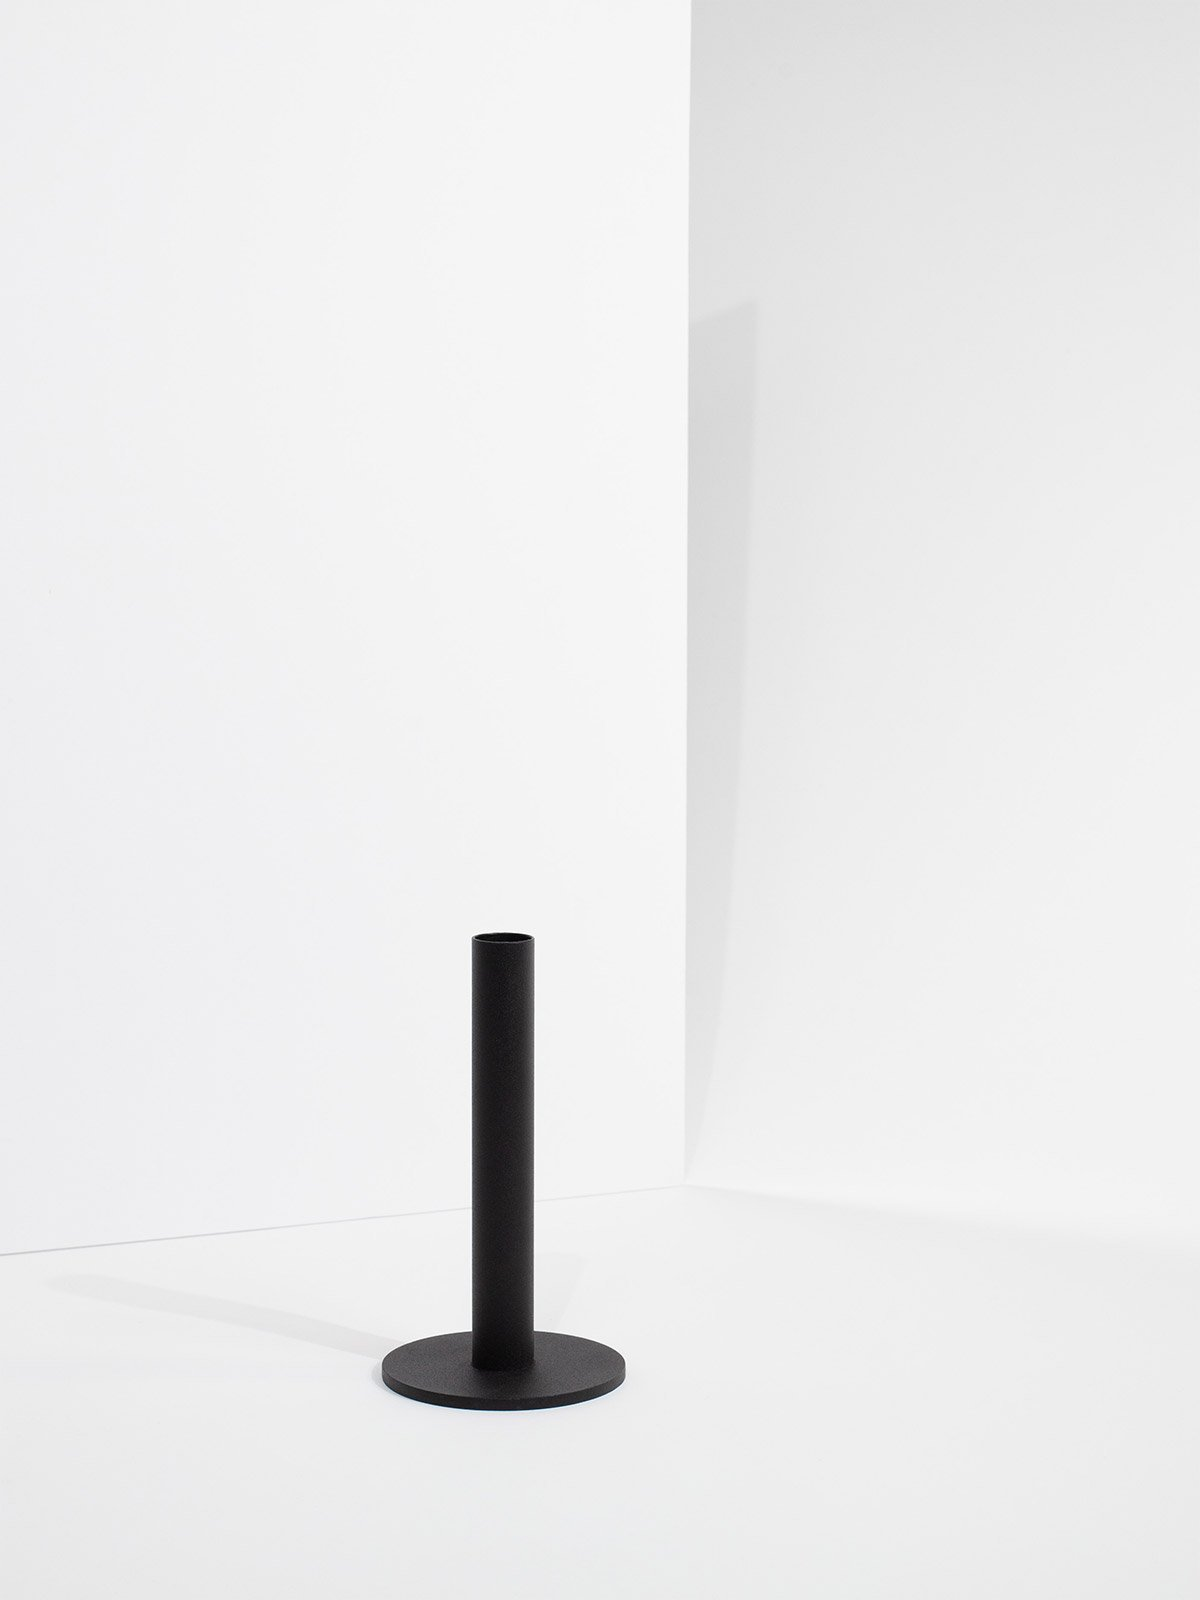 tapercandleholder_medium_black_product1_miljuu.com_1312-020